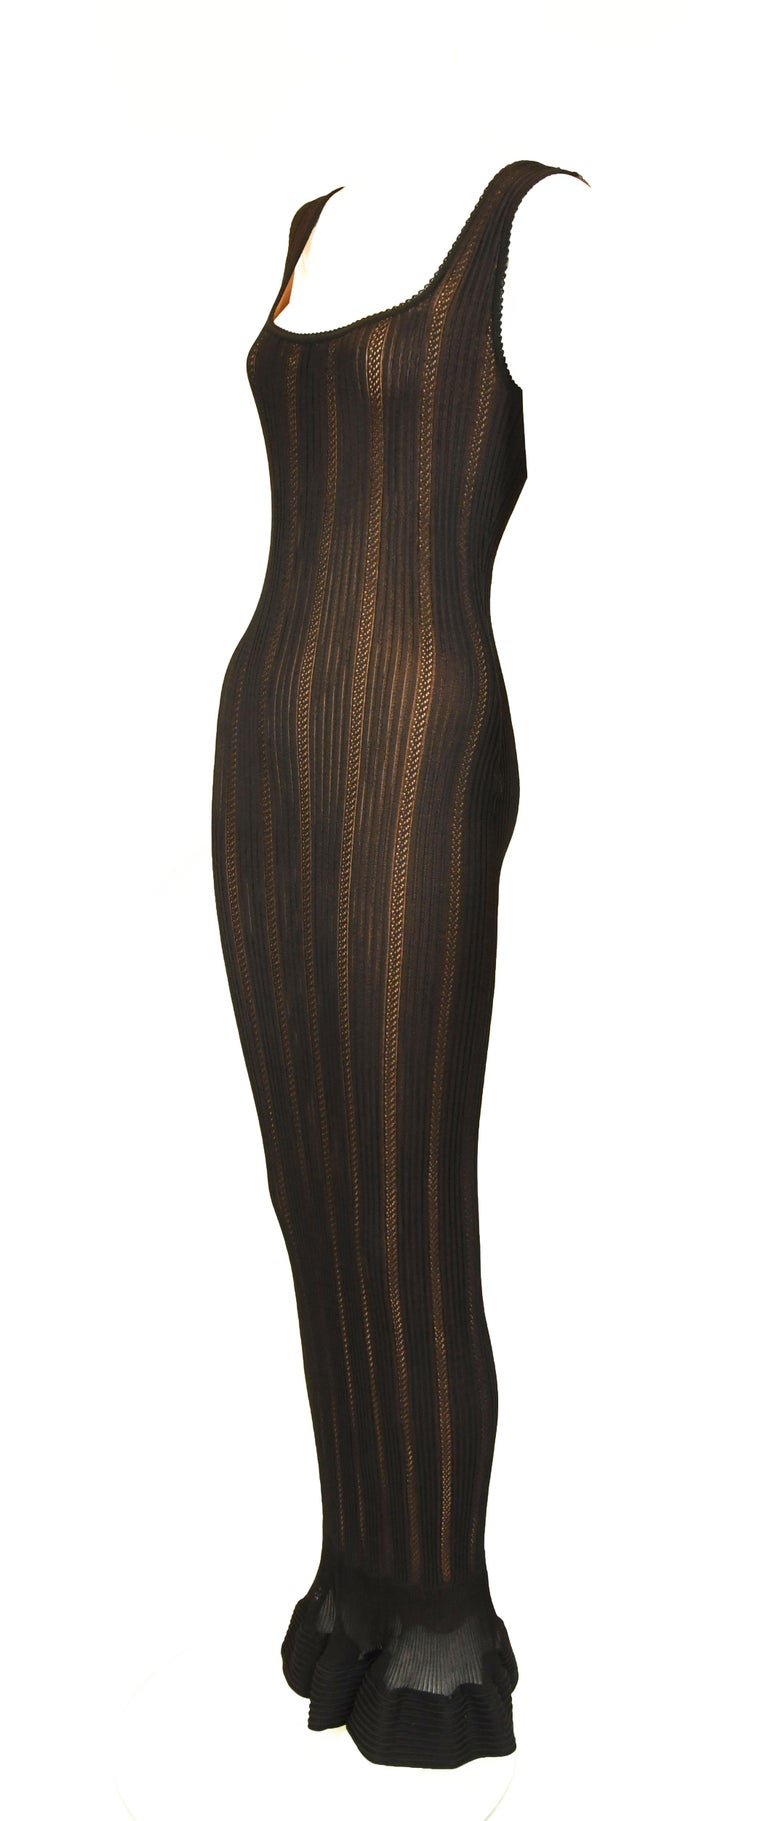 Vintage Alaia Black Knit Jacquard Gown with Nude Slip - Size S In Excellent Condition For Sale In Newport, RI